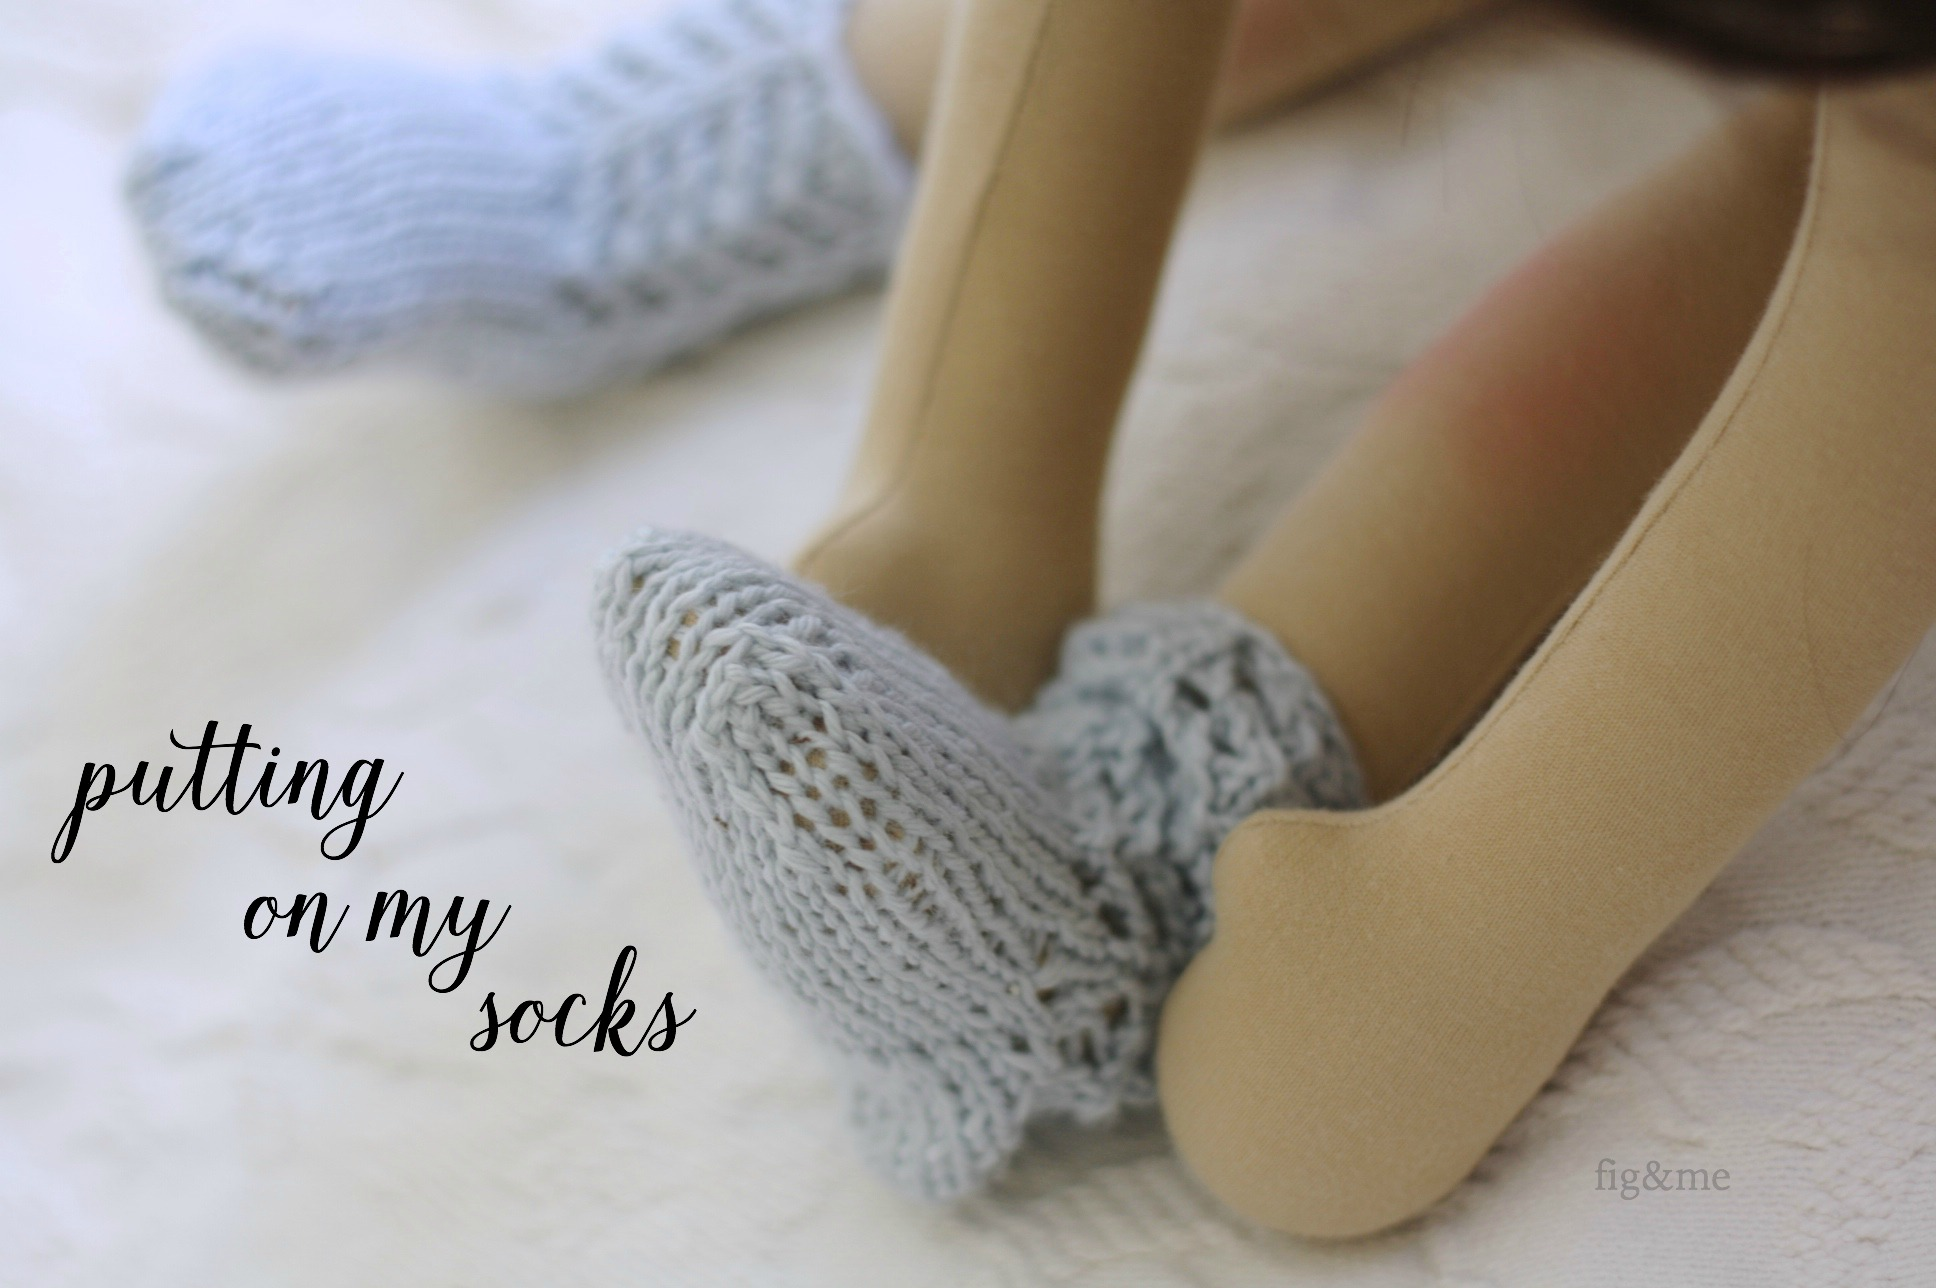 putting on my socks, by fig and me